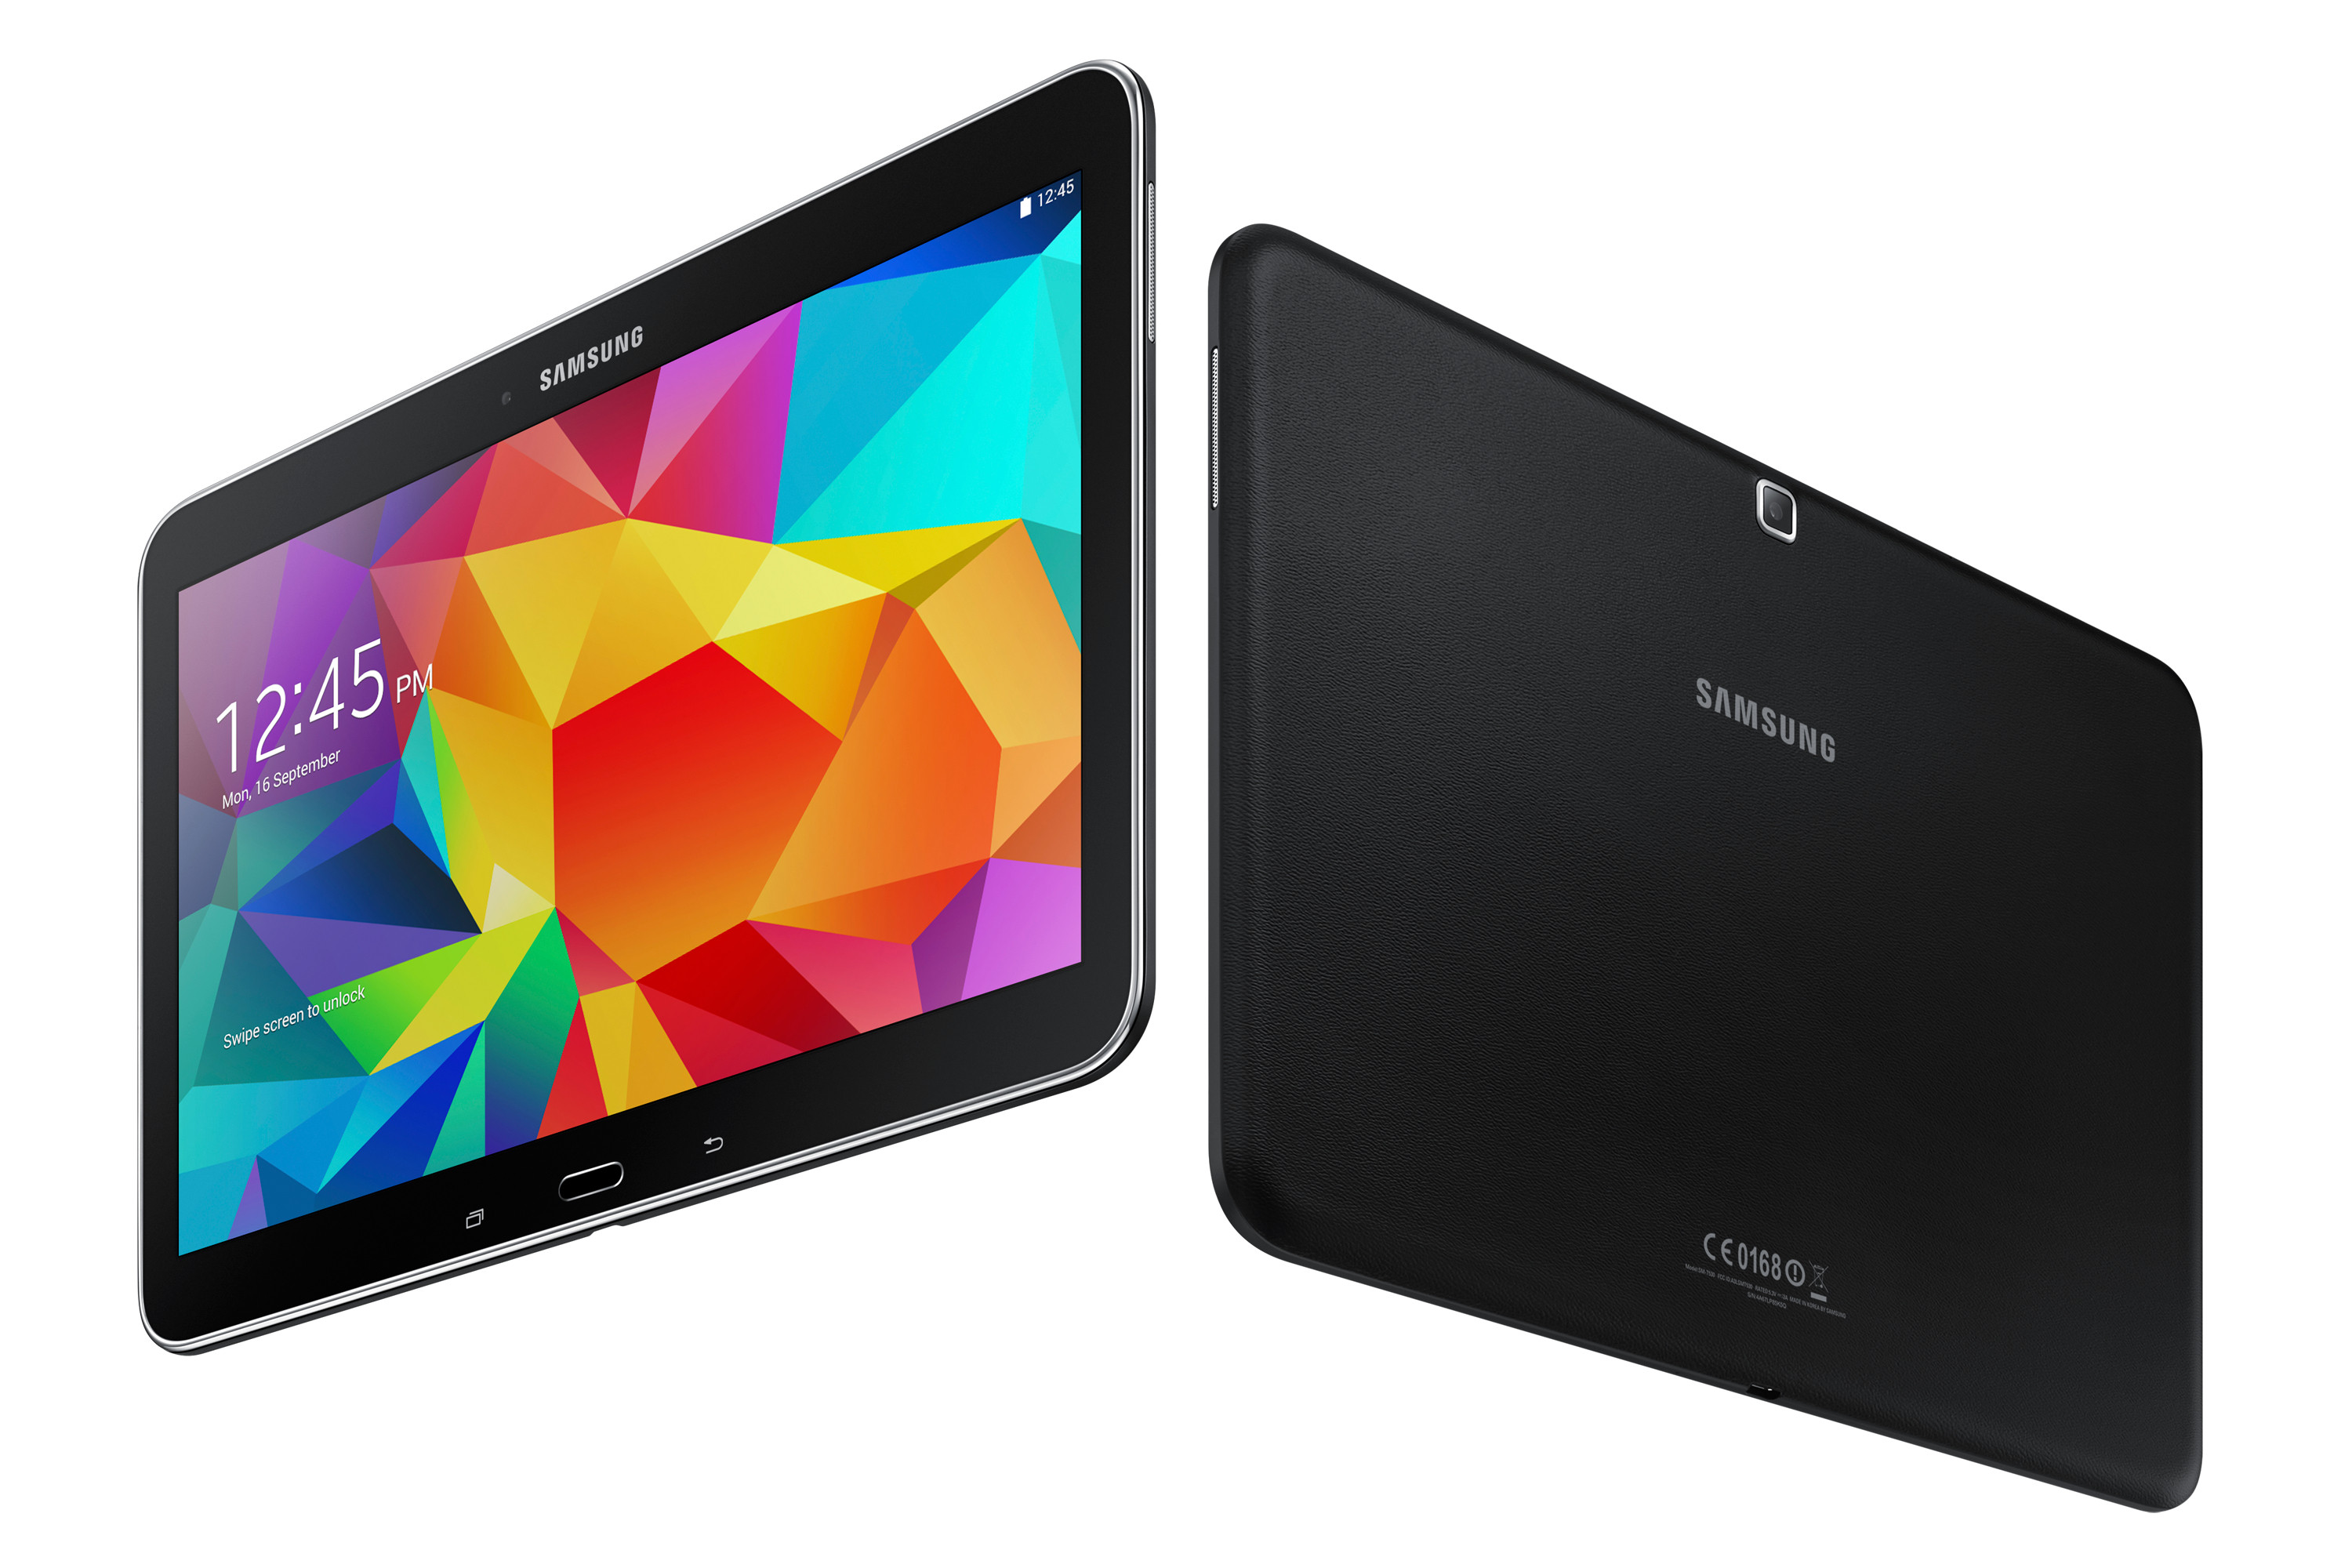 Samsung Galaxy Tab A 10.1 Innovador Review Samsung Galaxy Tab 4 10 1 T530 T531 Mustek Of Samsung Galaxy Tab A 10.1 Innovador How to Unroot the Samsung Galaxy Tab 2 10 1 at&t theunlockr